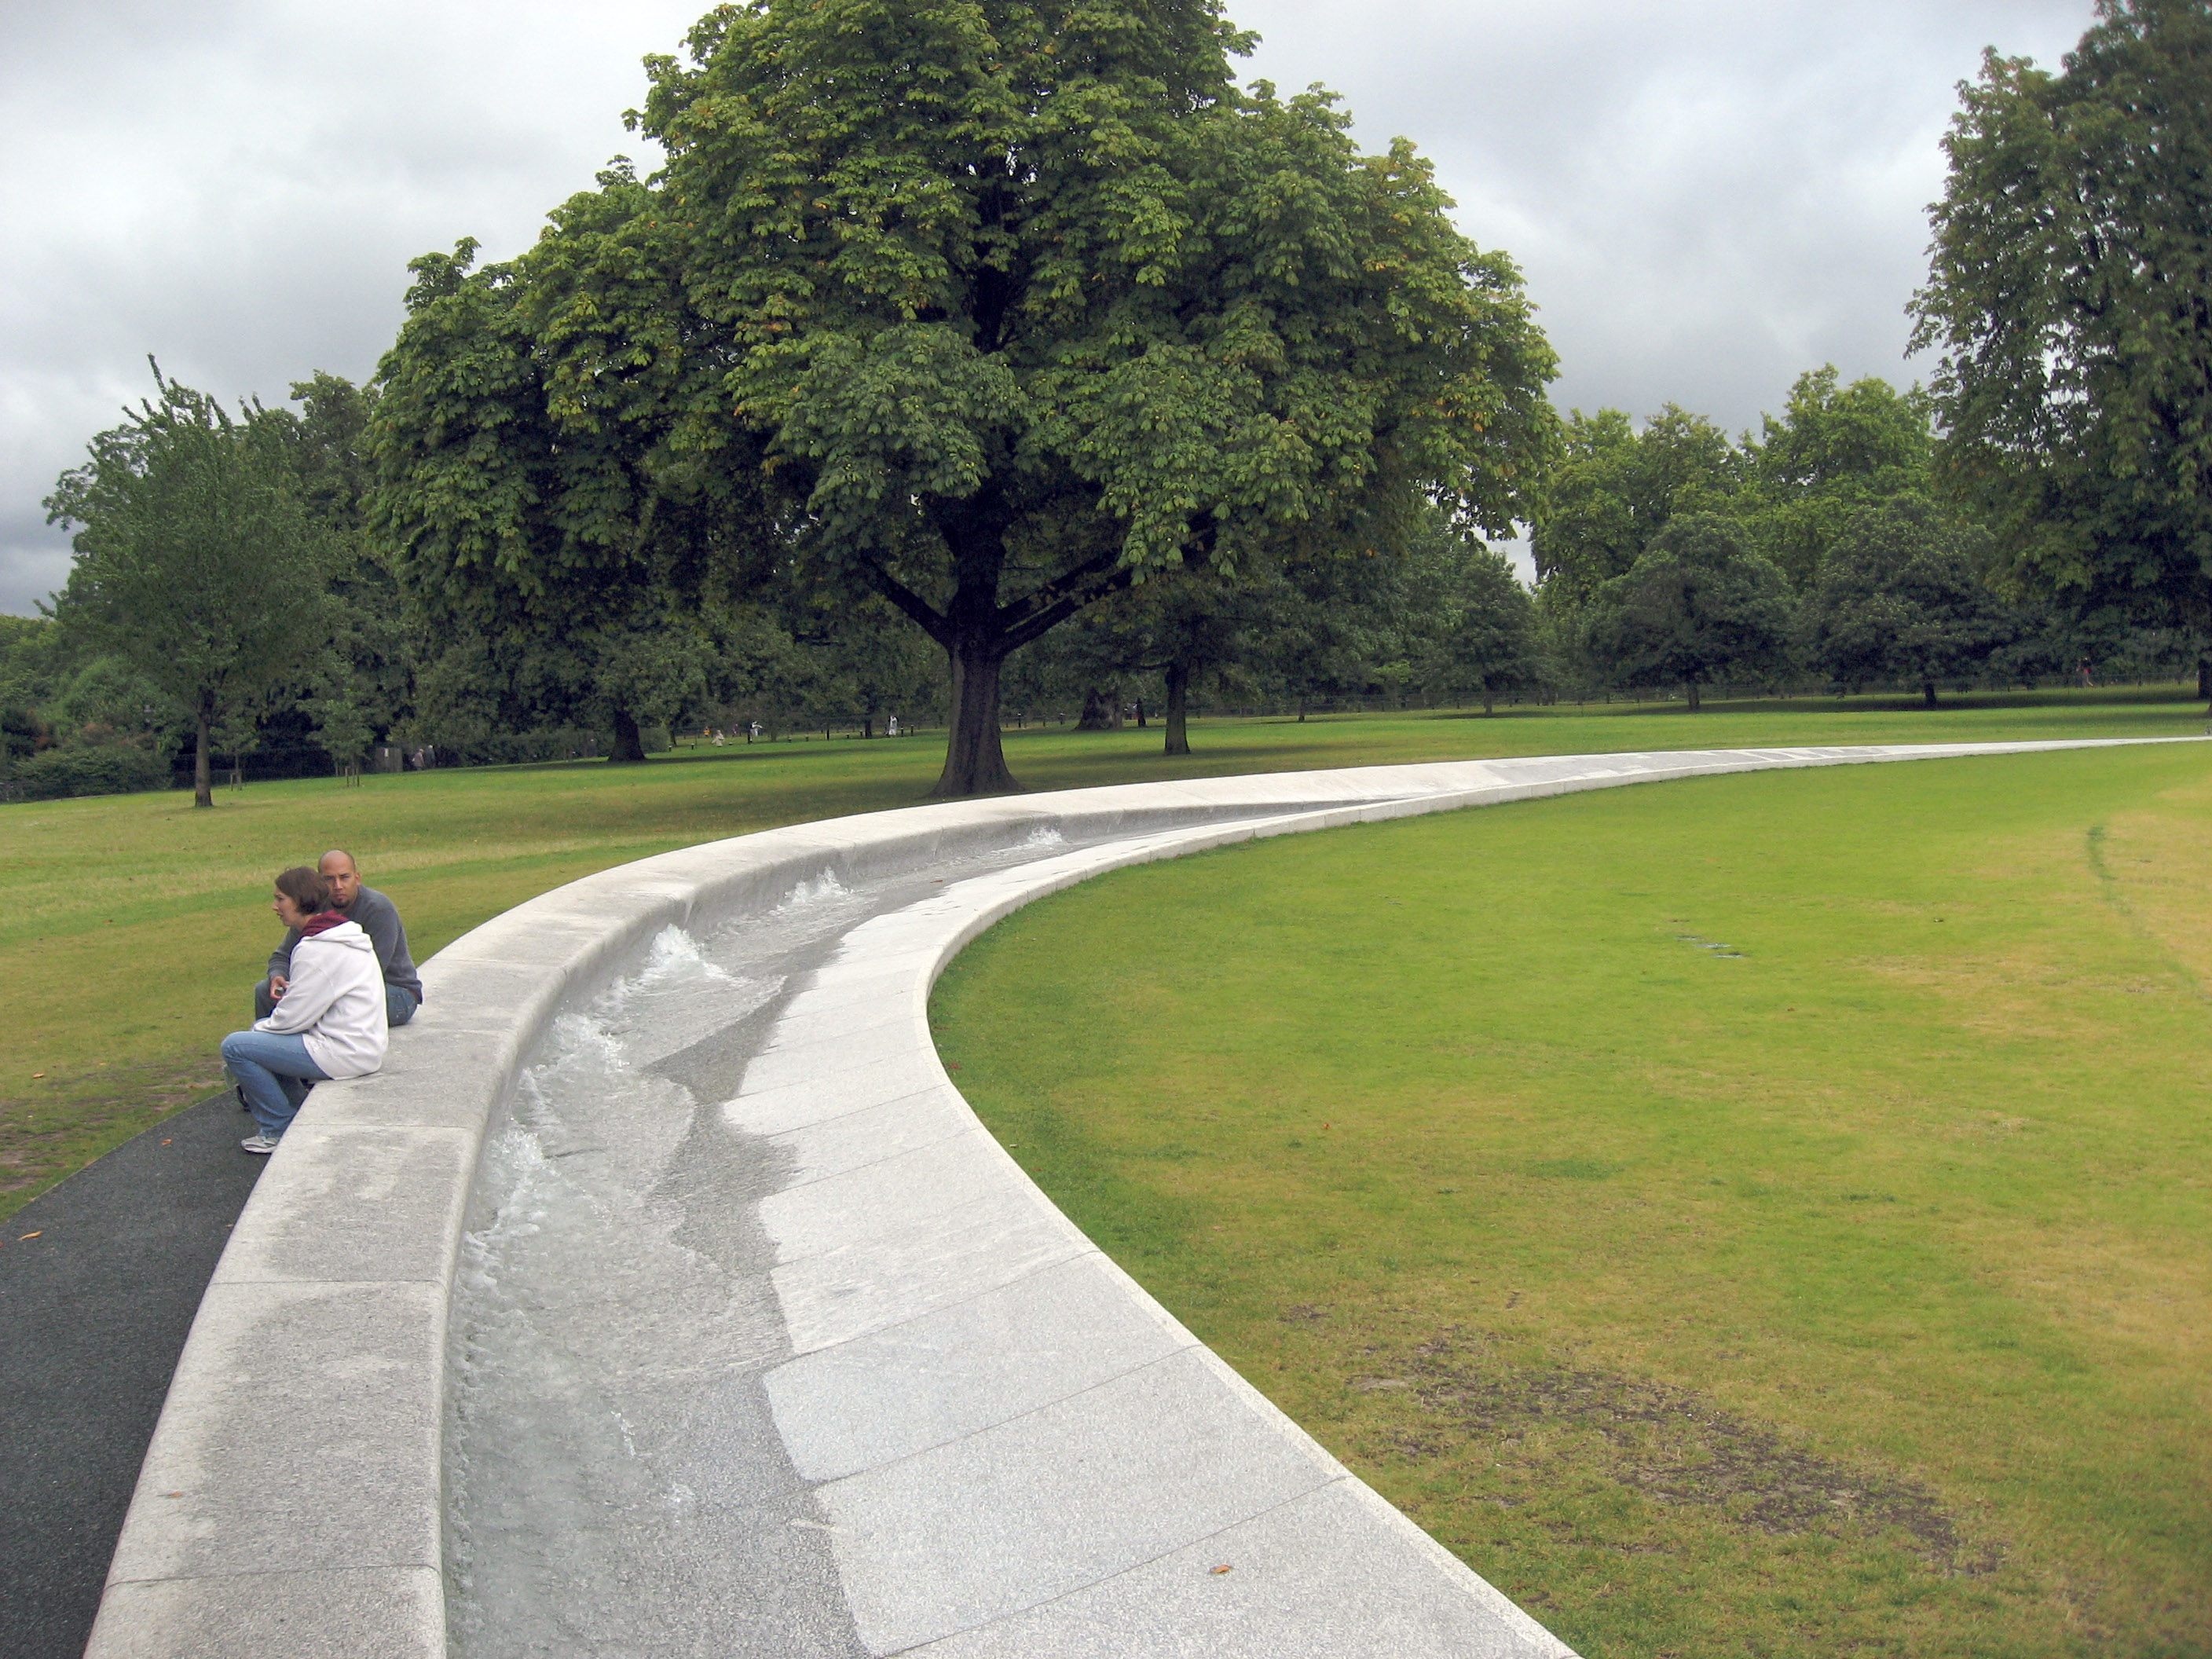 Water fountains hyde park - Another Picture Of A Section Of The Princess Diana Memorial Fountain In Hyde Park London